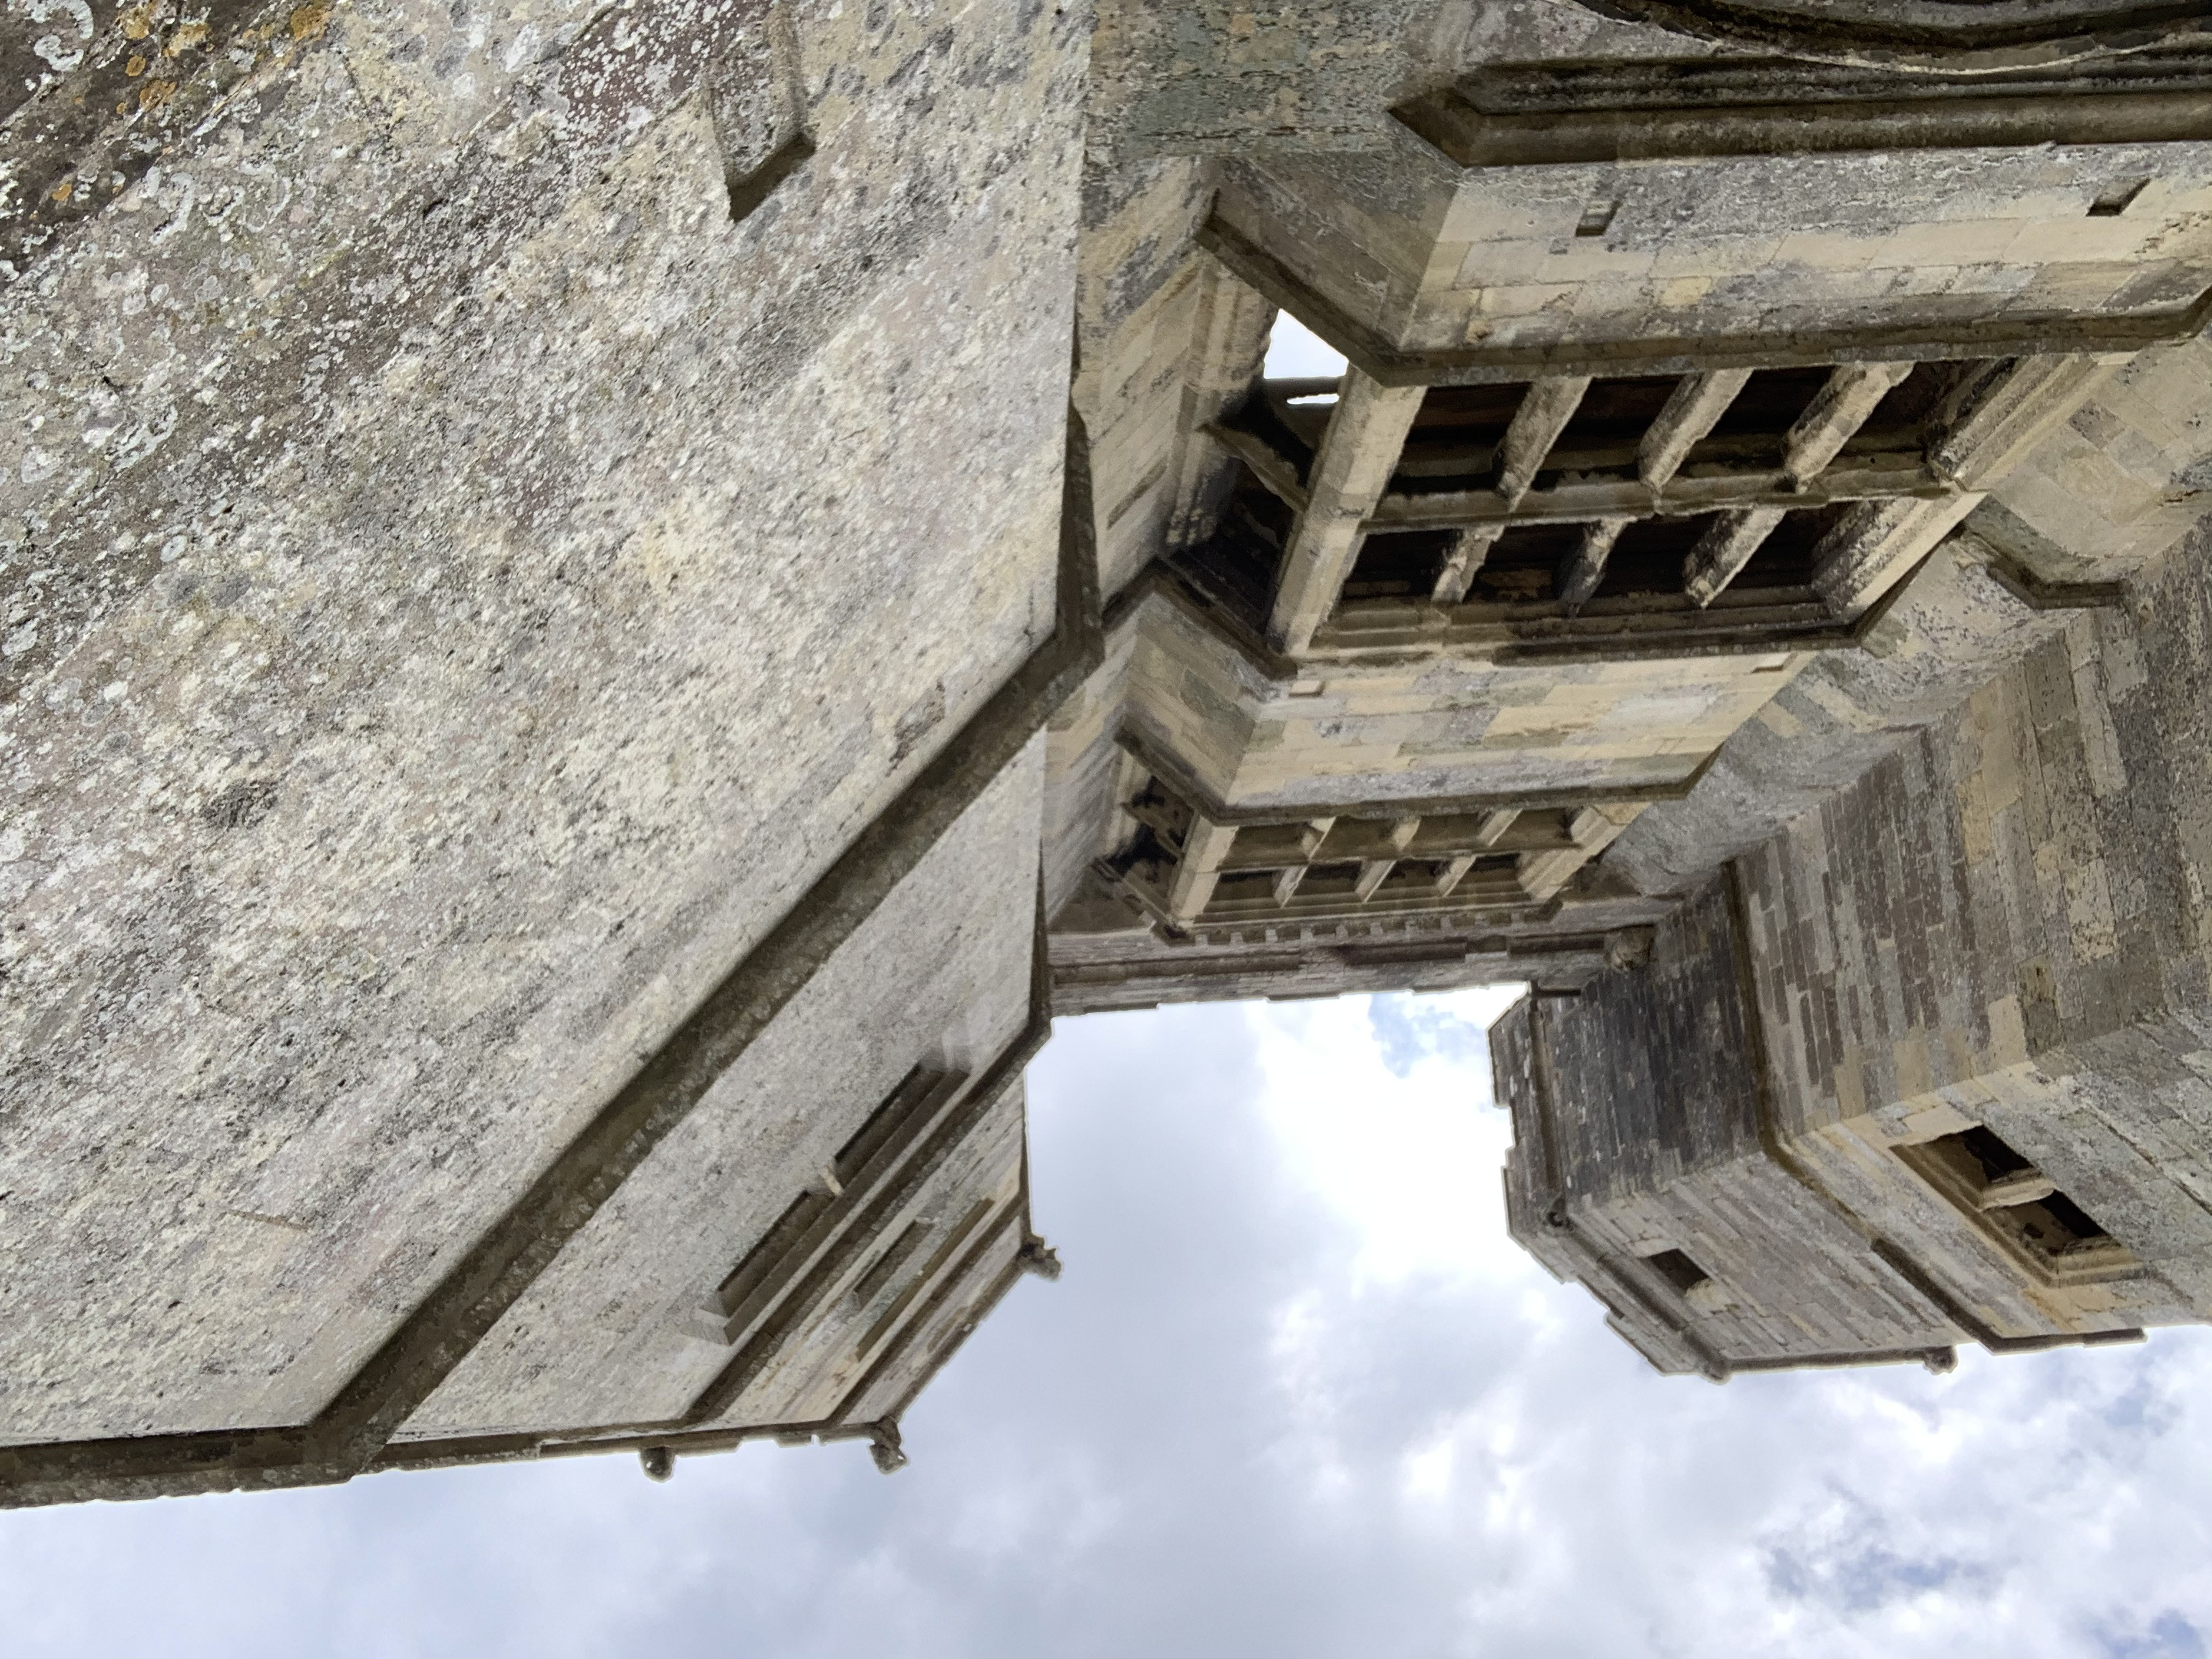 Looking up at the abbey towers